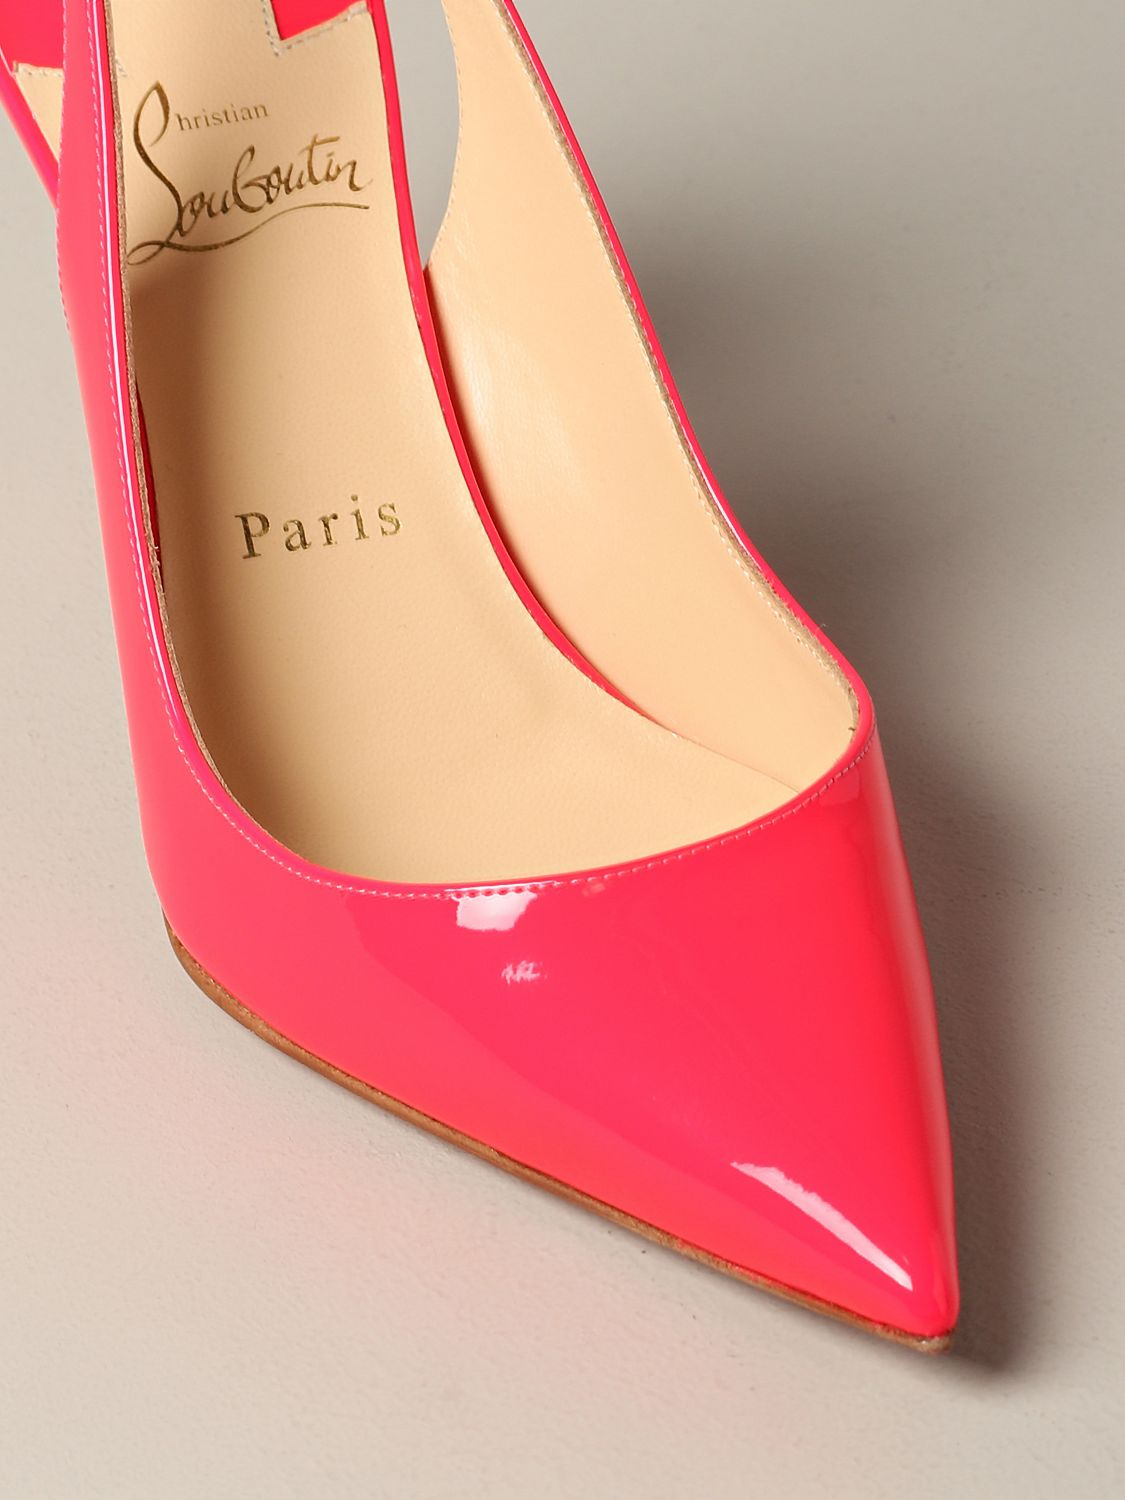 Christian Louboutin Clare sling back in fluorescent paint pink 4